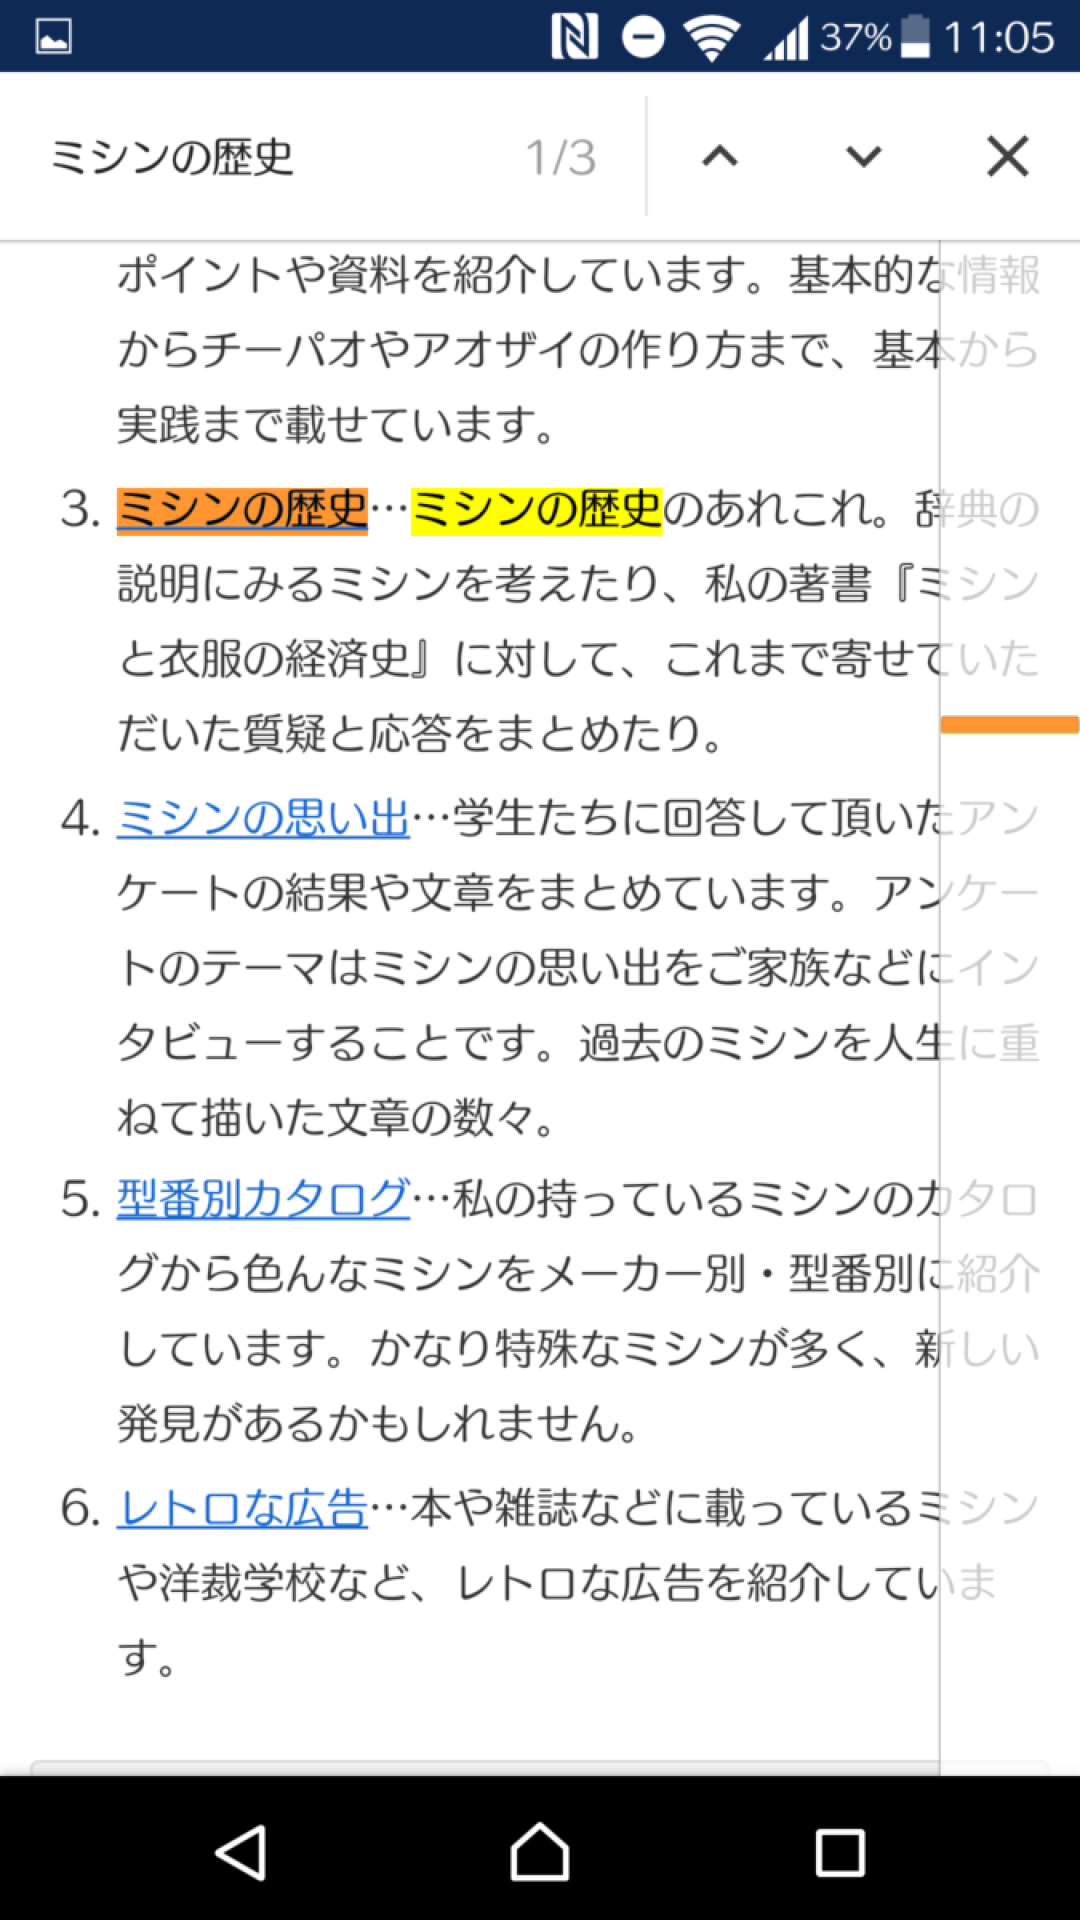 Androidの記事内検索